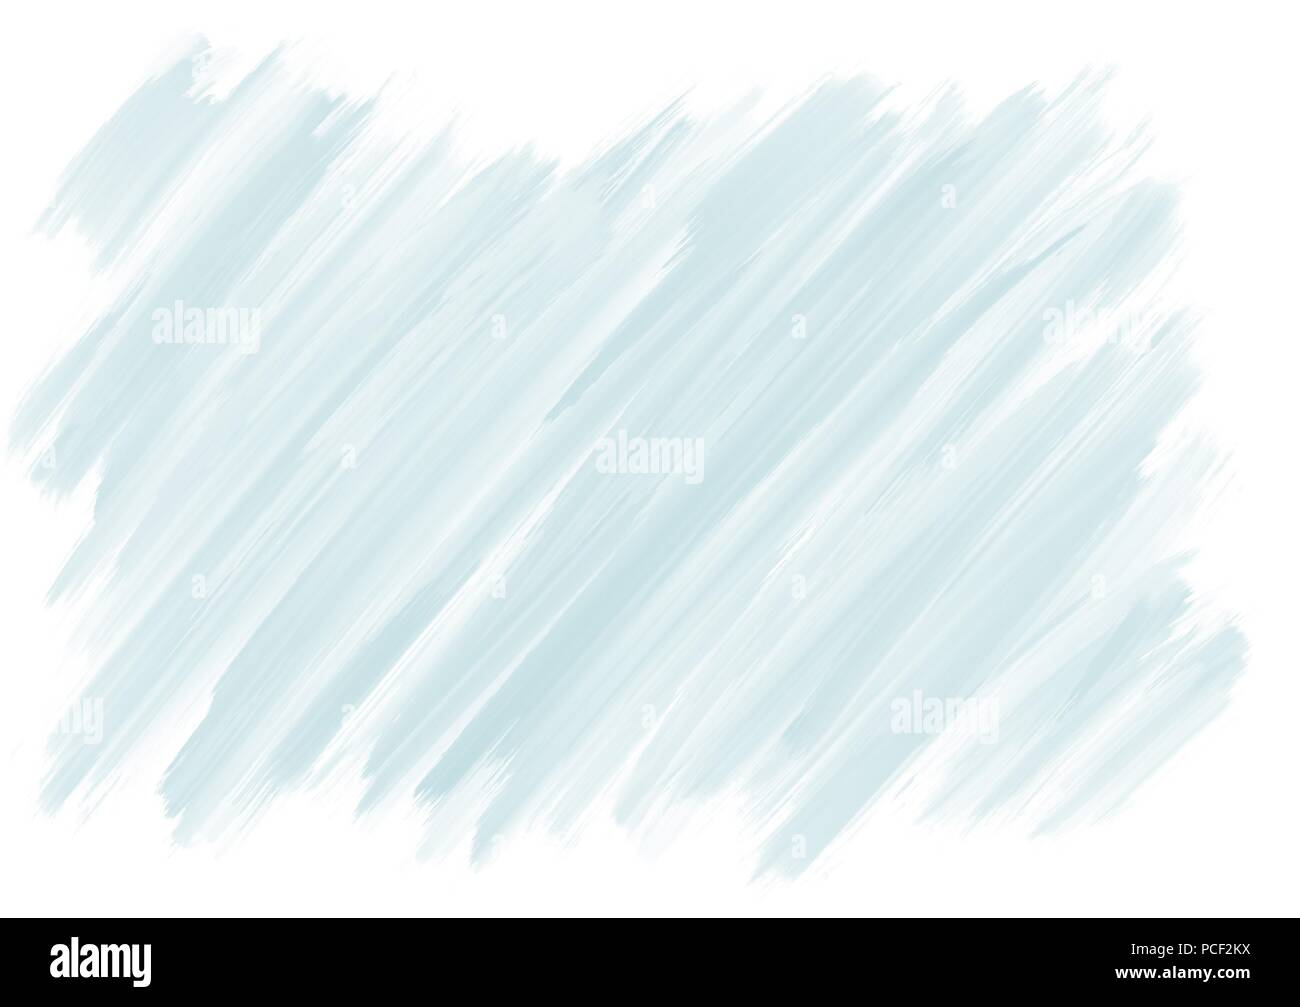 Peinture gouache light blue background illustration dessiné à la main Photo Stock